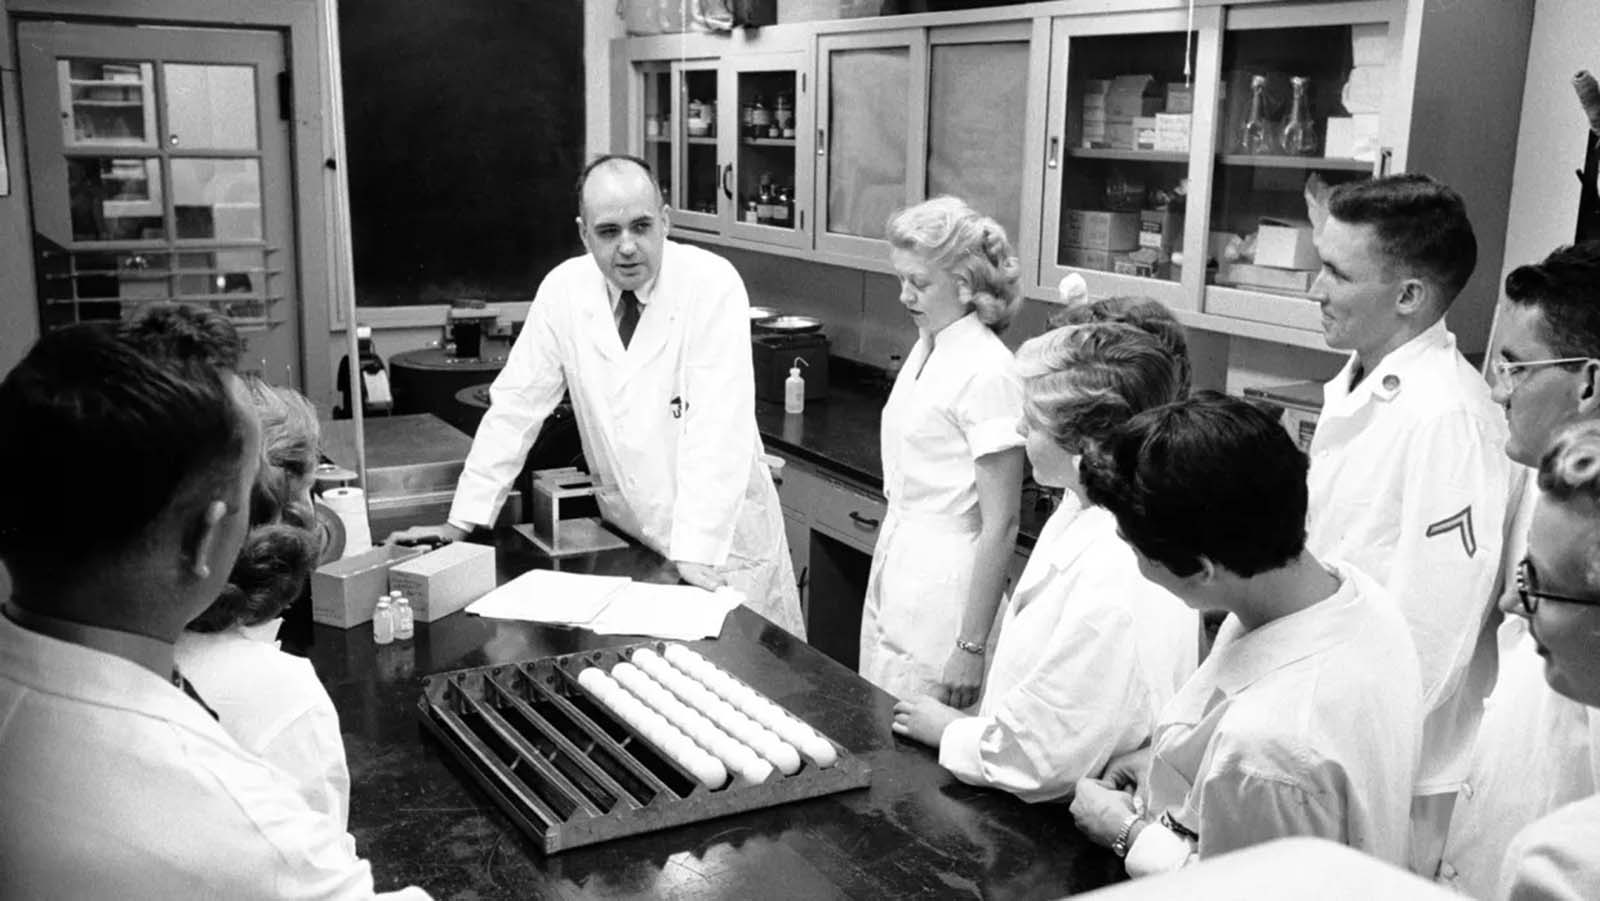 Dr. Maurice Hilleman, pictured center, talking with his research team as they study the flu virus in a lab at Walter Reed Army Institute of Research in Silver Springs, Maryland, 1957.